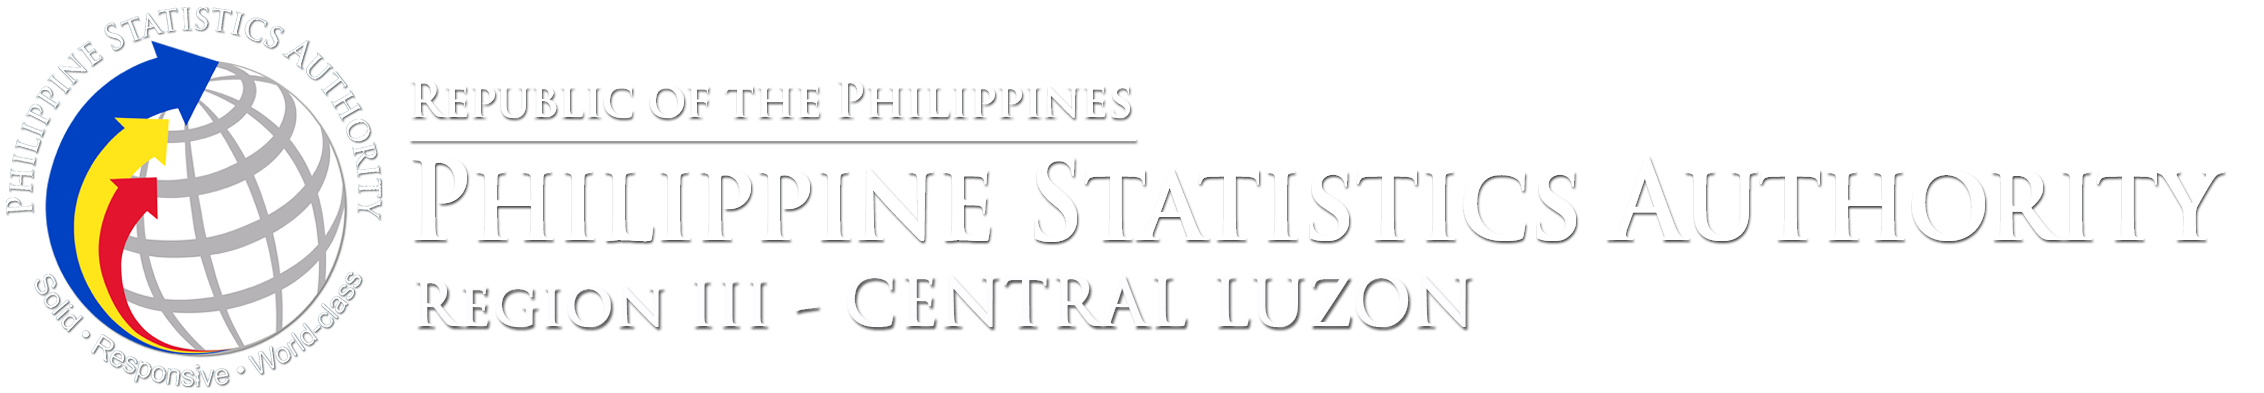 Philippine Statistics Authority RSSO 03